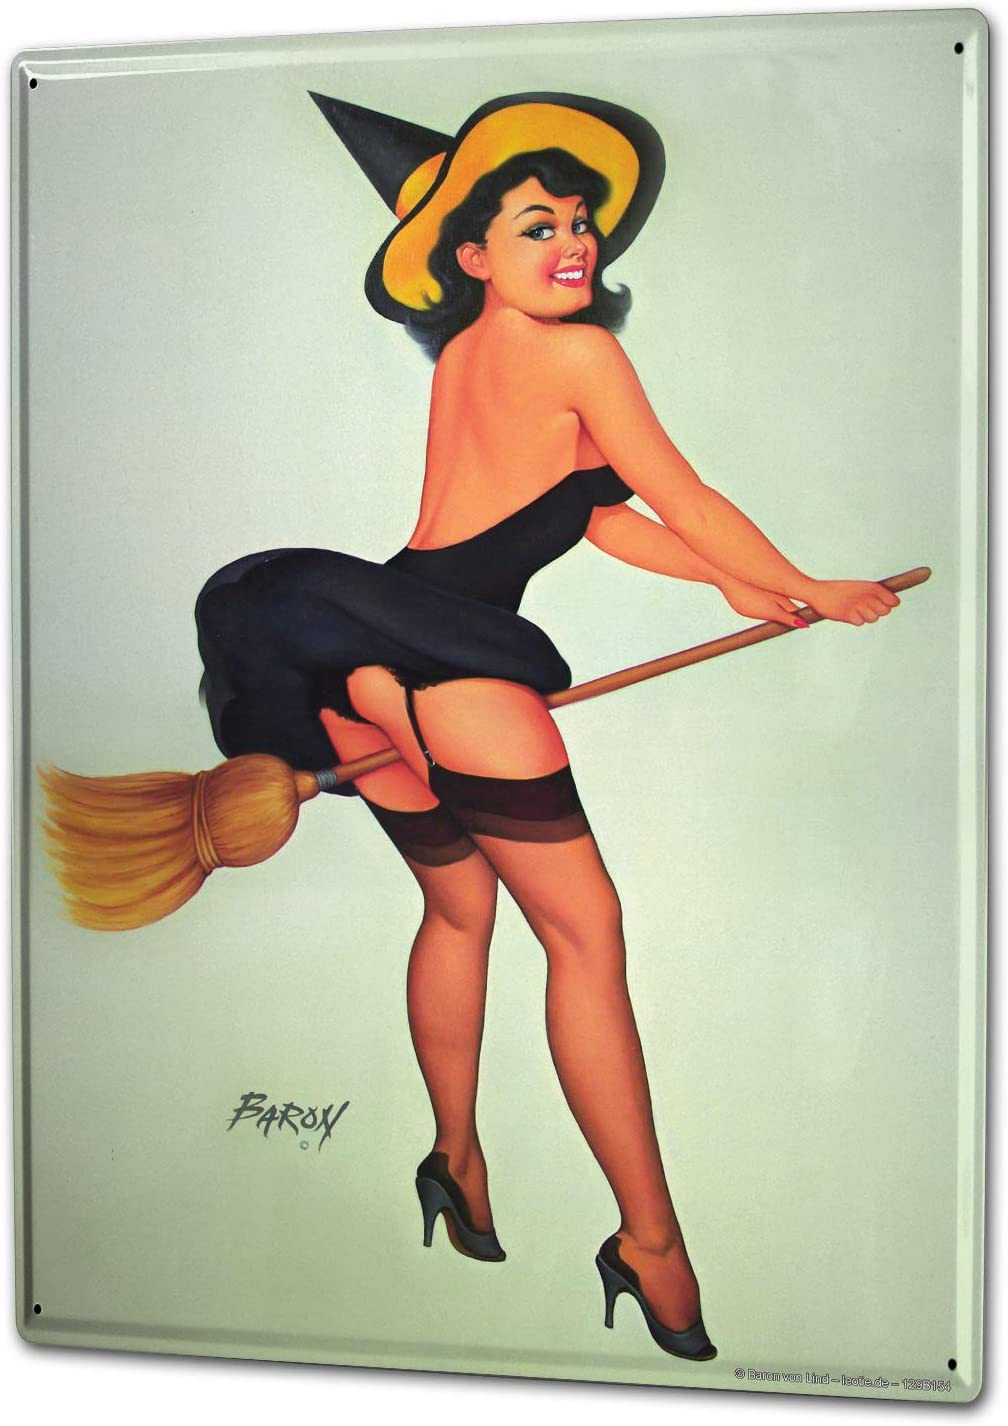 LEotiE SINCE 2004 Witch Broom hat Tin Sign Metal Plate Decorative Sign Home Decor Plaques 20x30 cm Metal Plate Shield Wall Decoration Decoration Decoration Retro Pinup Girl Advertising